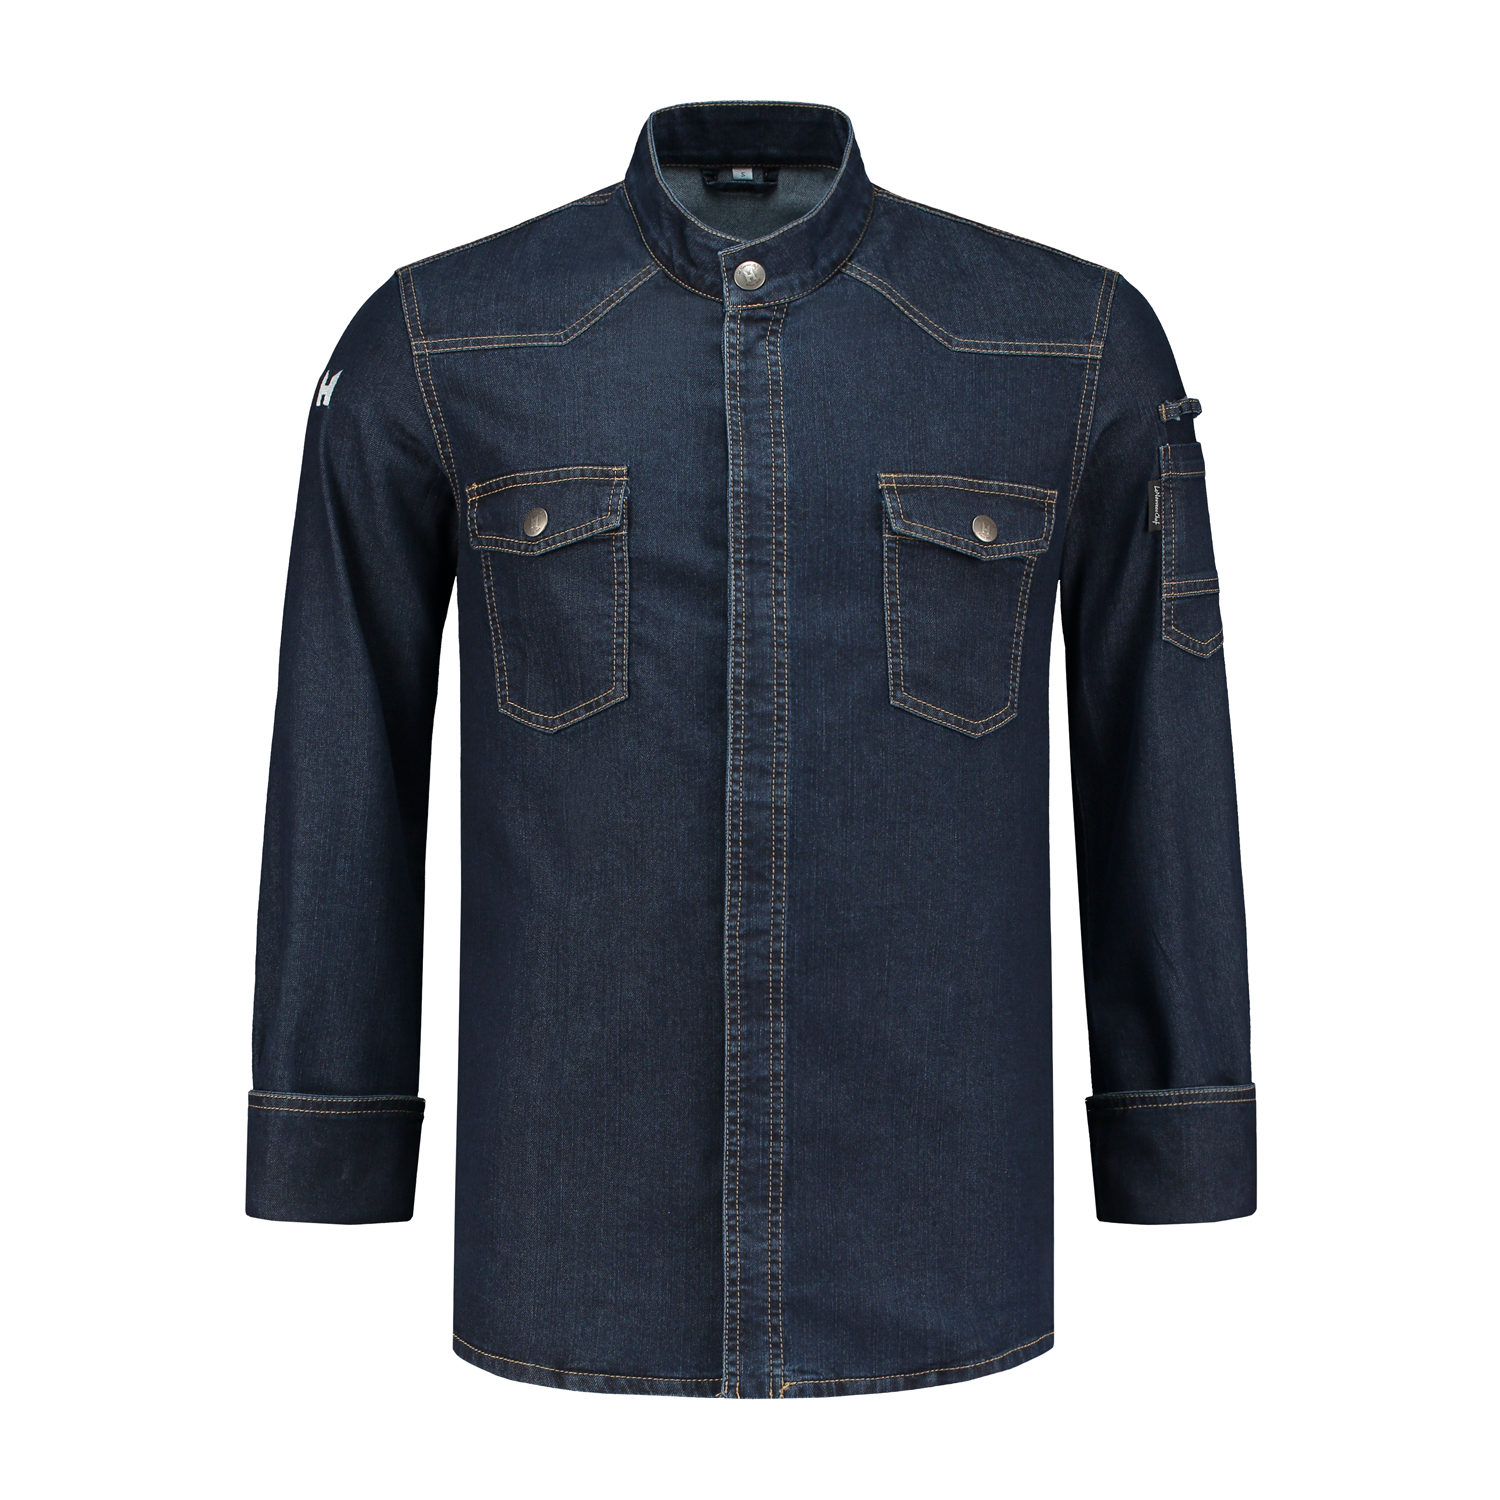 Veste Cuisine Texas Washed Blue Denim